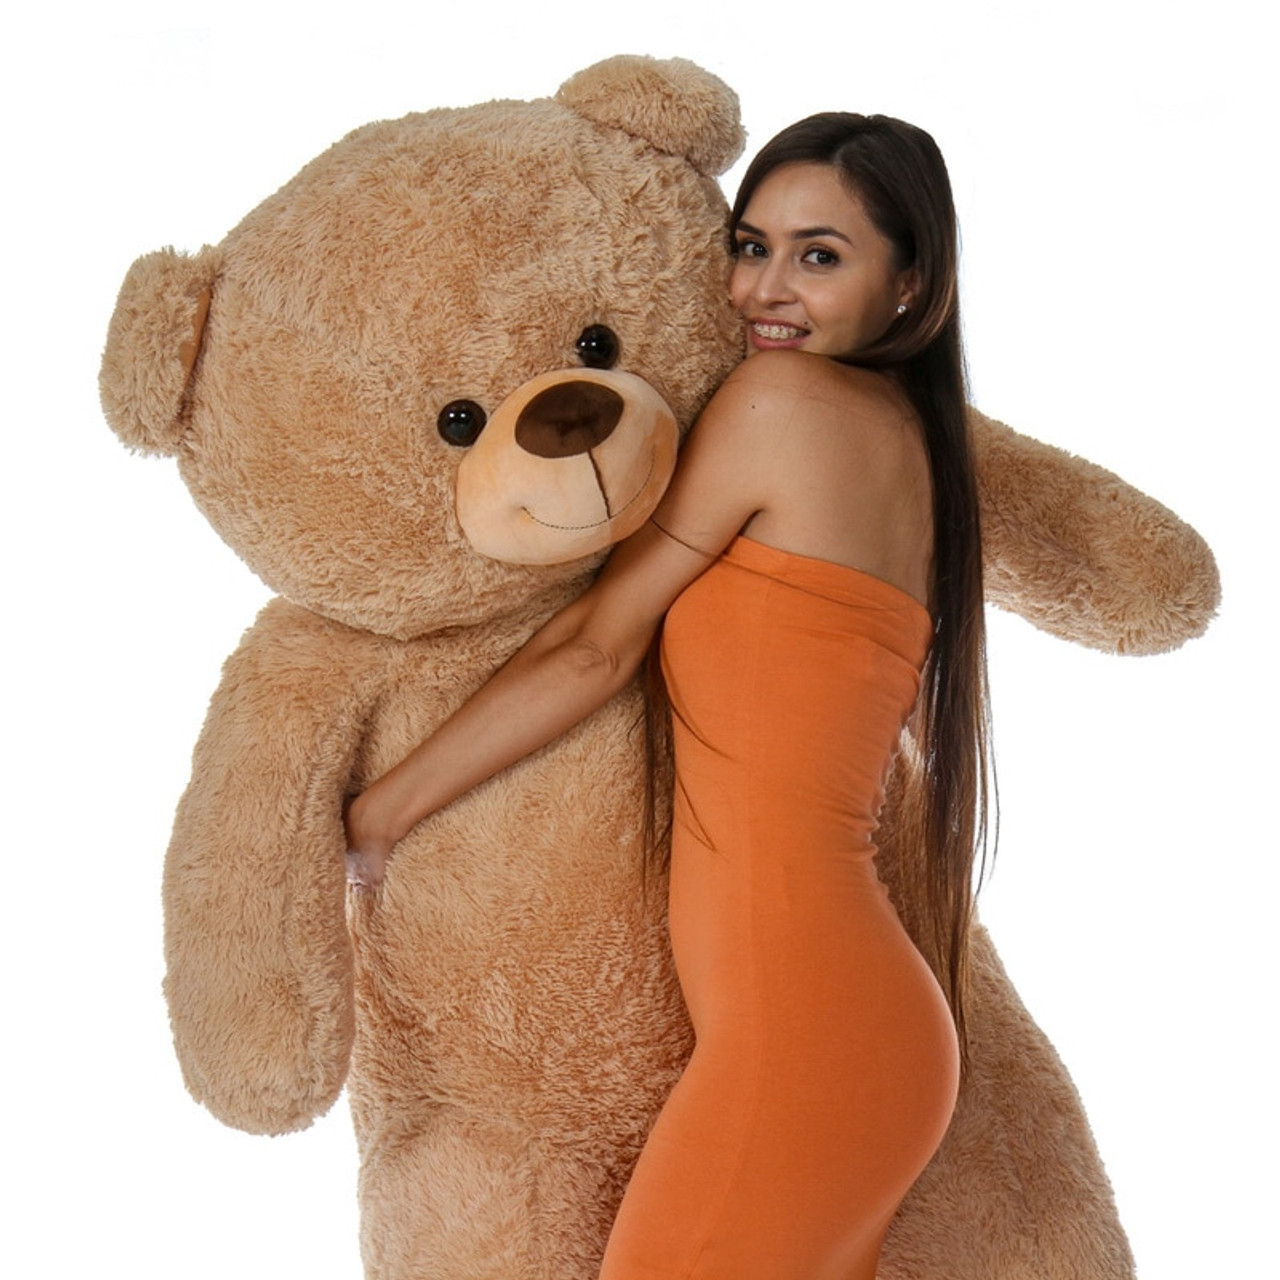 Giant Teddy 6 Foot Super Soft Amber Tan Teddy Bear